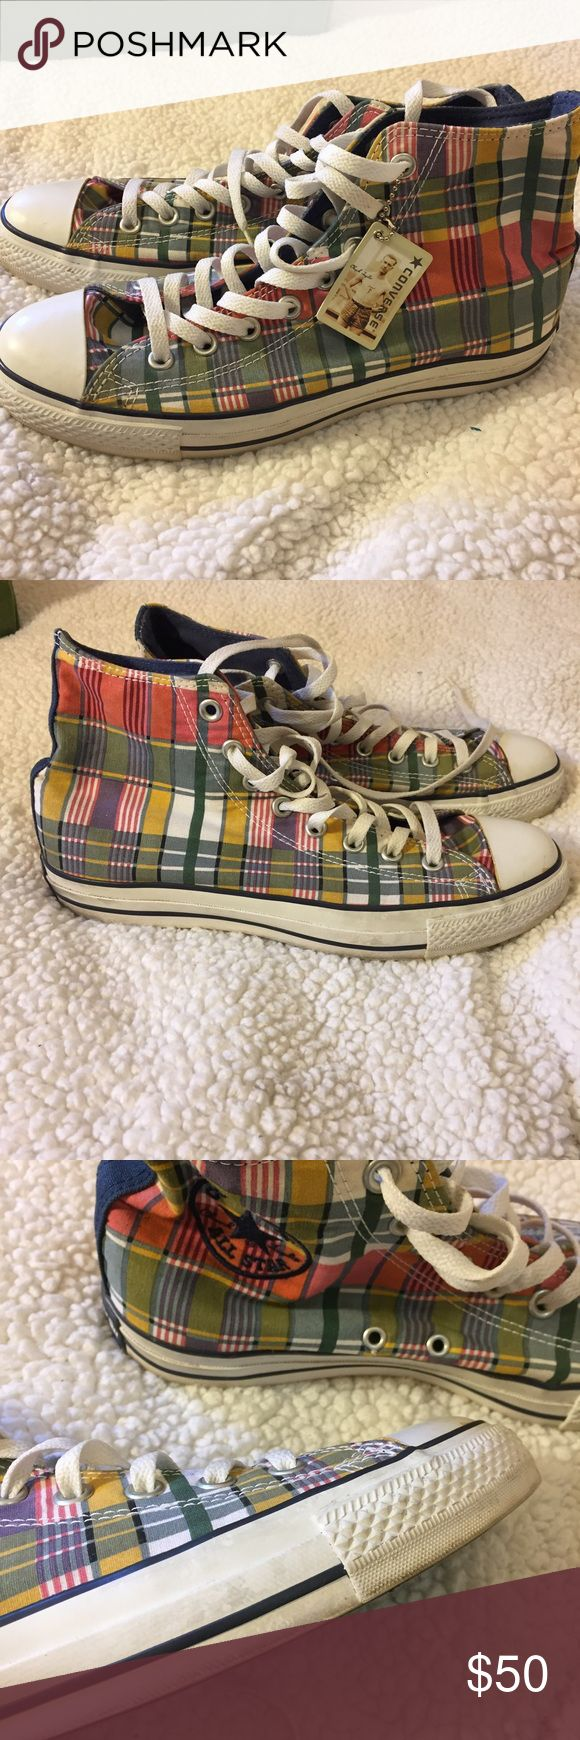 Plaid Converse Chuck Taylor Sneakers Really cool plaid print perfect for all seasons! Chuck Taylors run big please be aware of your size :) Converse Shoes Sneakers